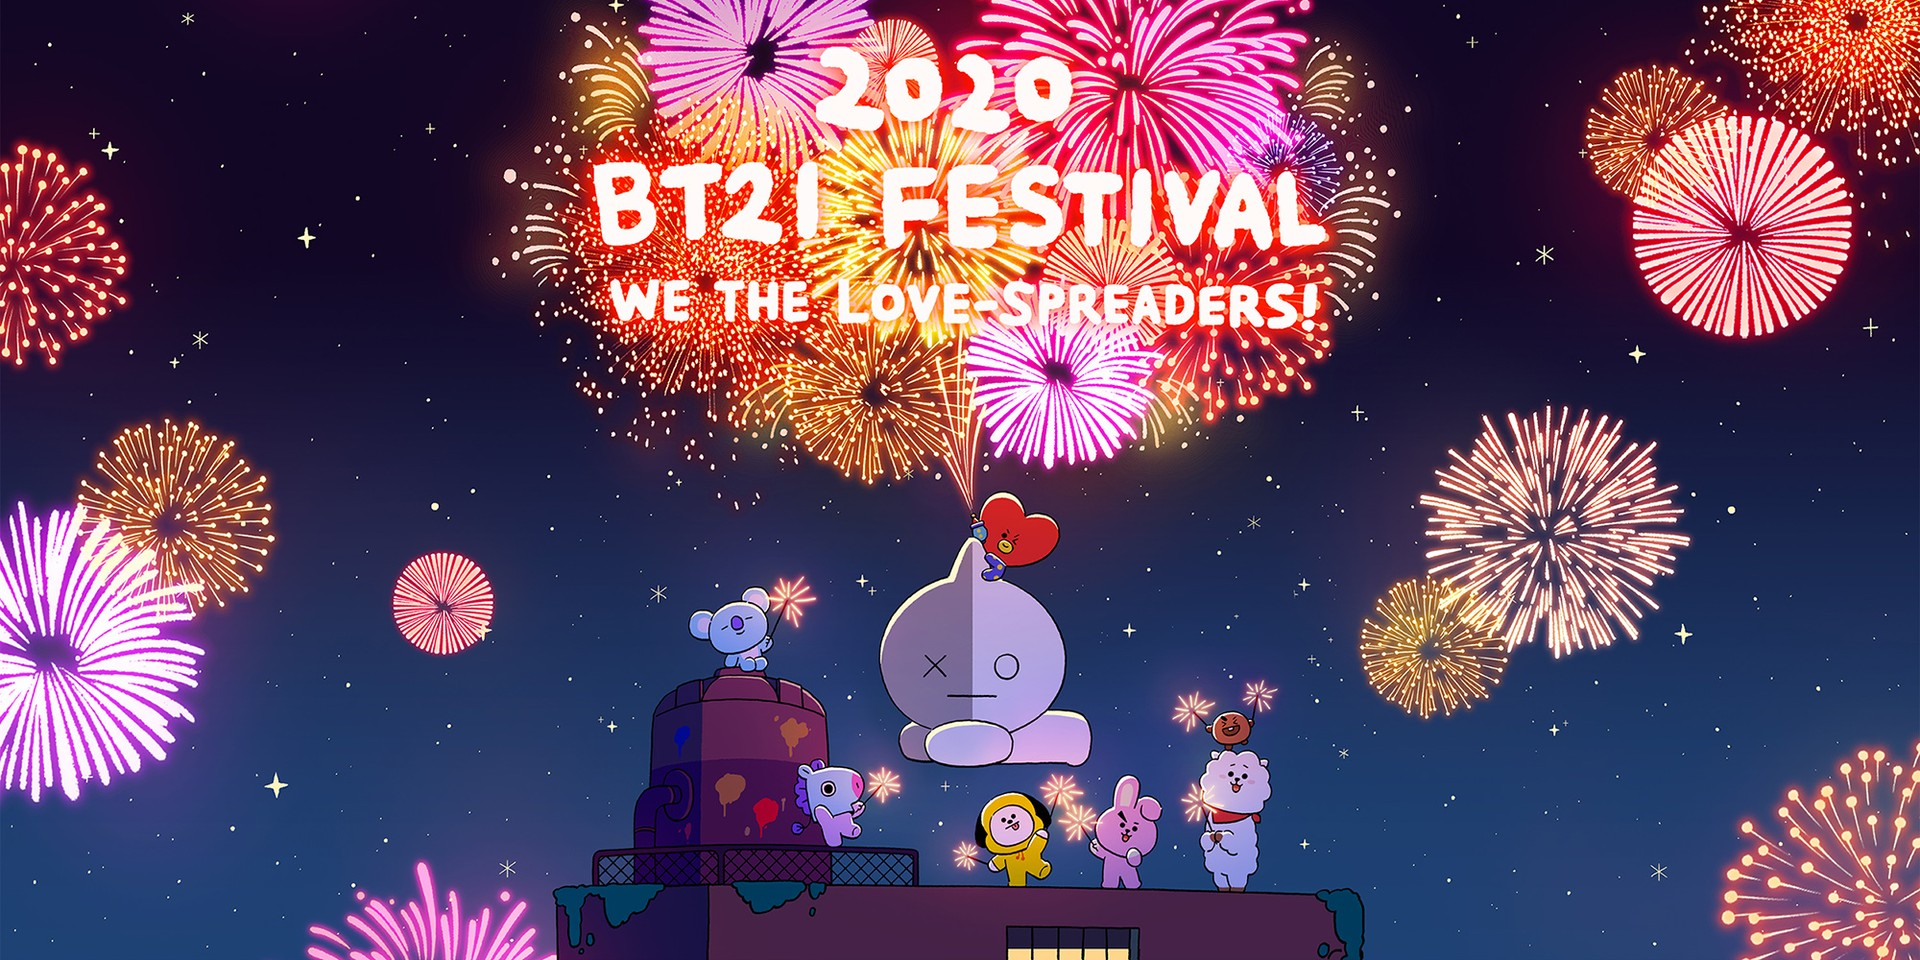 Celebrate the 3rd anniversary of BT21, BTS' LINE FRIENDS characters, this December with the 2020 BT21 Festival